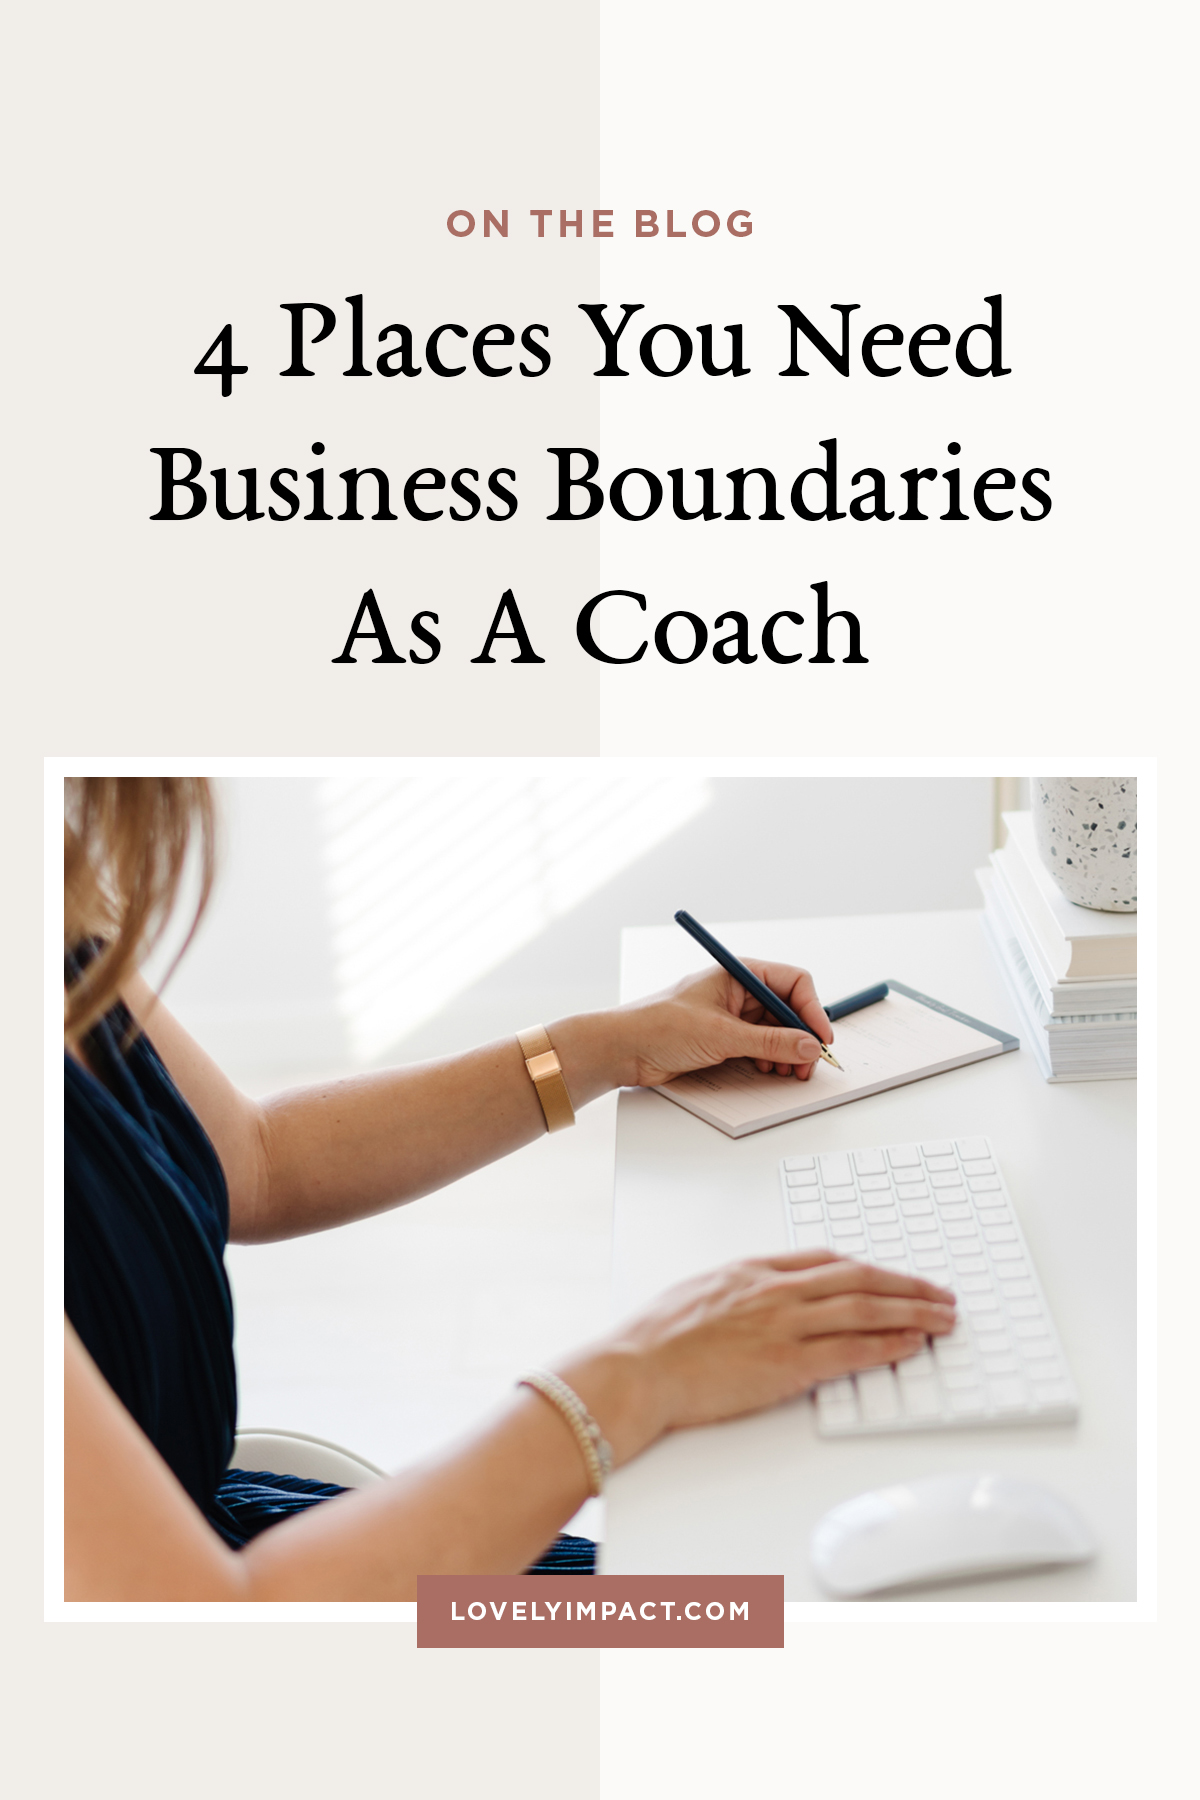 4 Places You Need Business Boundaries As A Coach